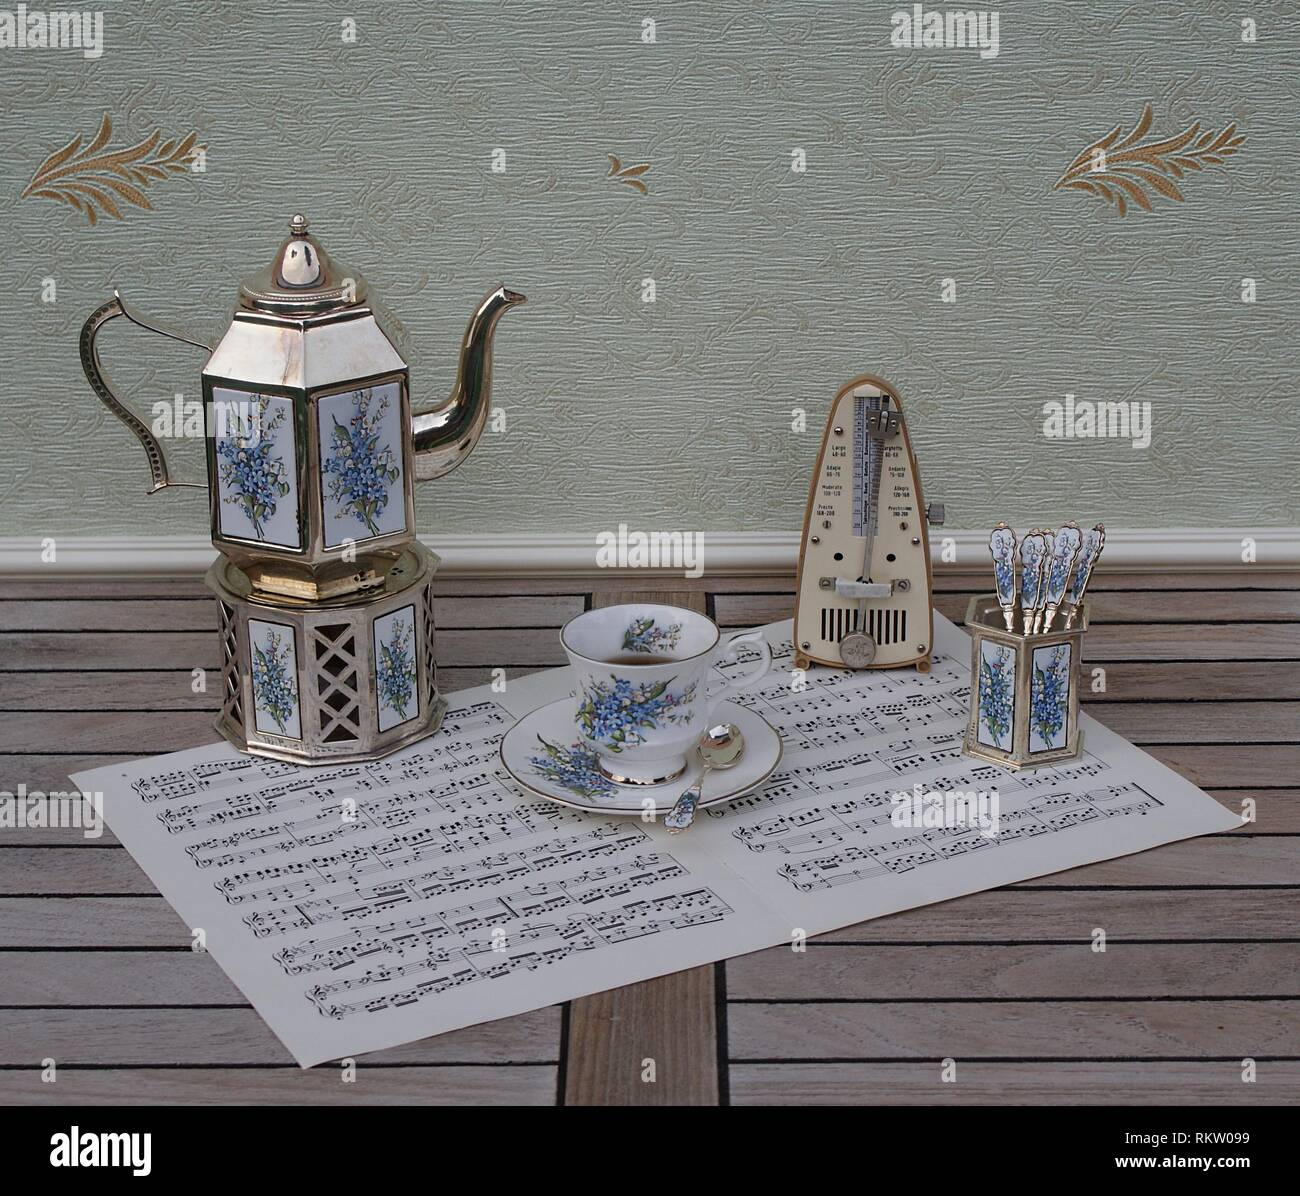 English teacup and saucer, silver-plated teapot on a silver stove, spoon vase and teaspoon and metronome for music on a sheet of music - Stock Image